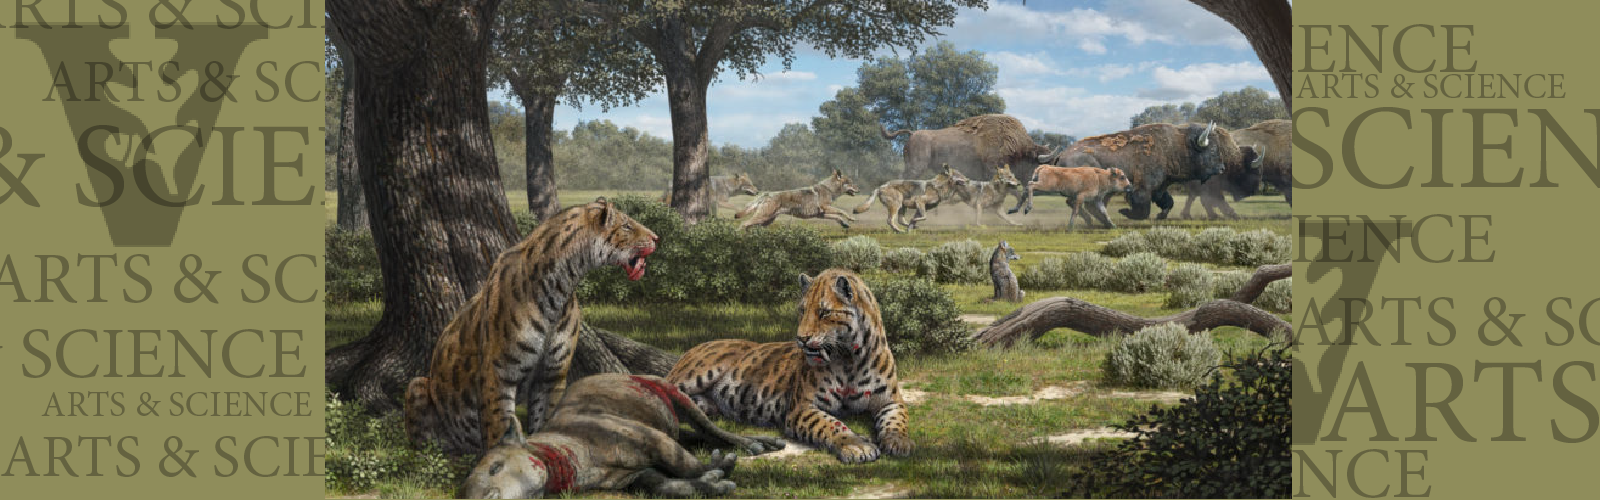 Paleontologist Larisa DeSantis explains why we have coyotes, not saber-toothed cats at LaBrea Tar Pits